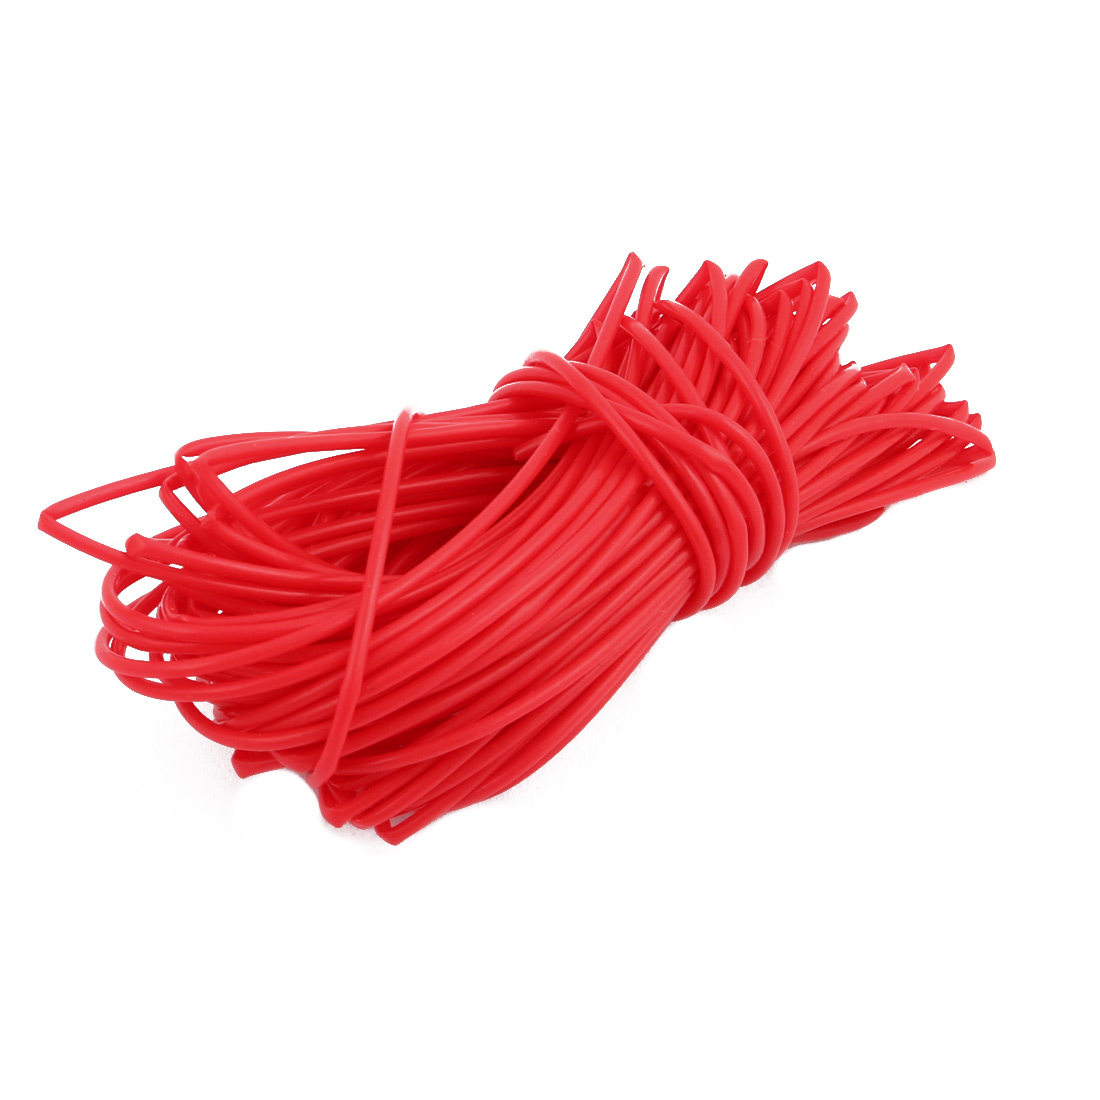 0.96mmx1.26mm PTFE Resistant High Temperature Red Tubing 5 Meters 16.4Ft